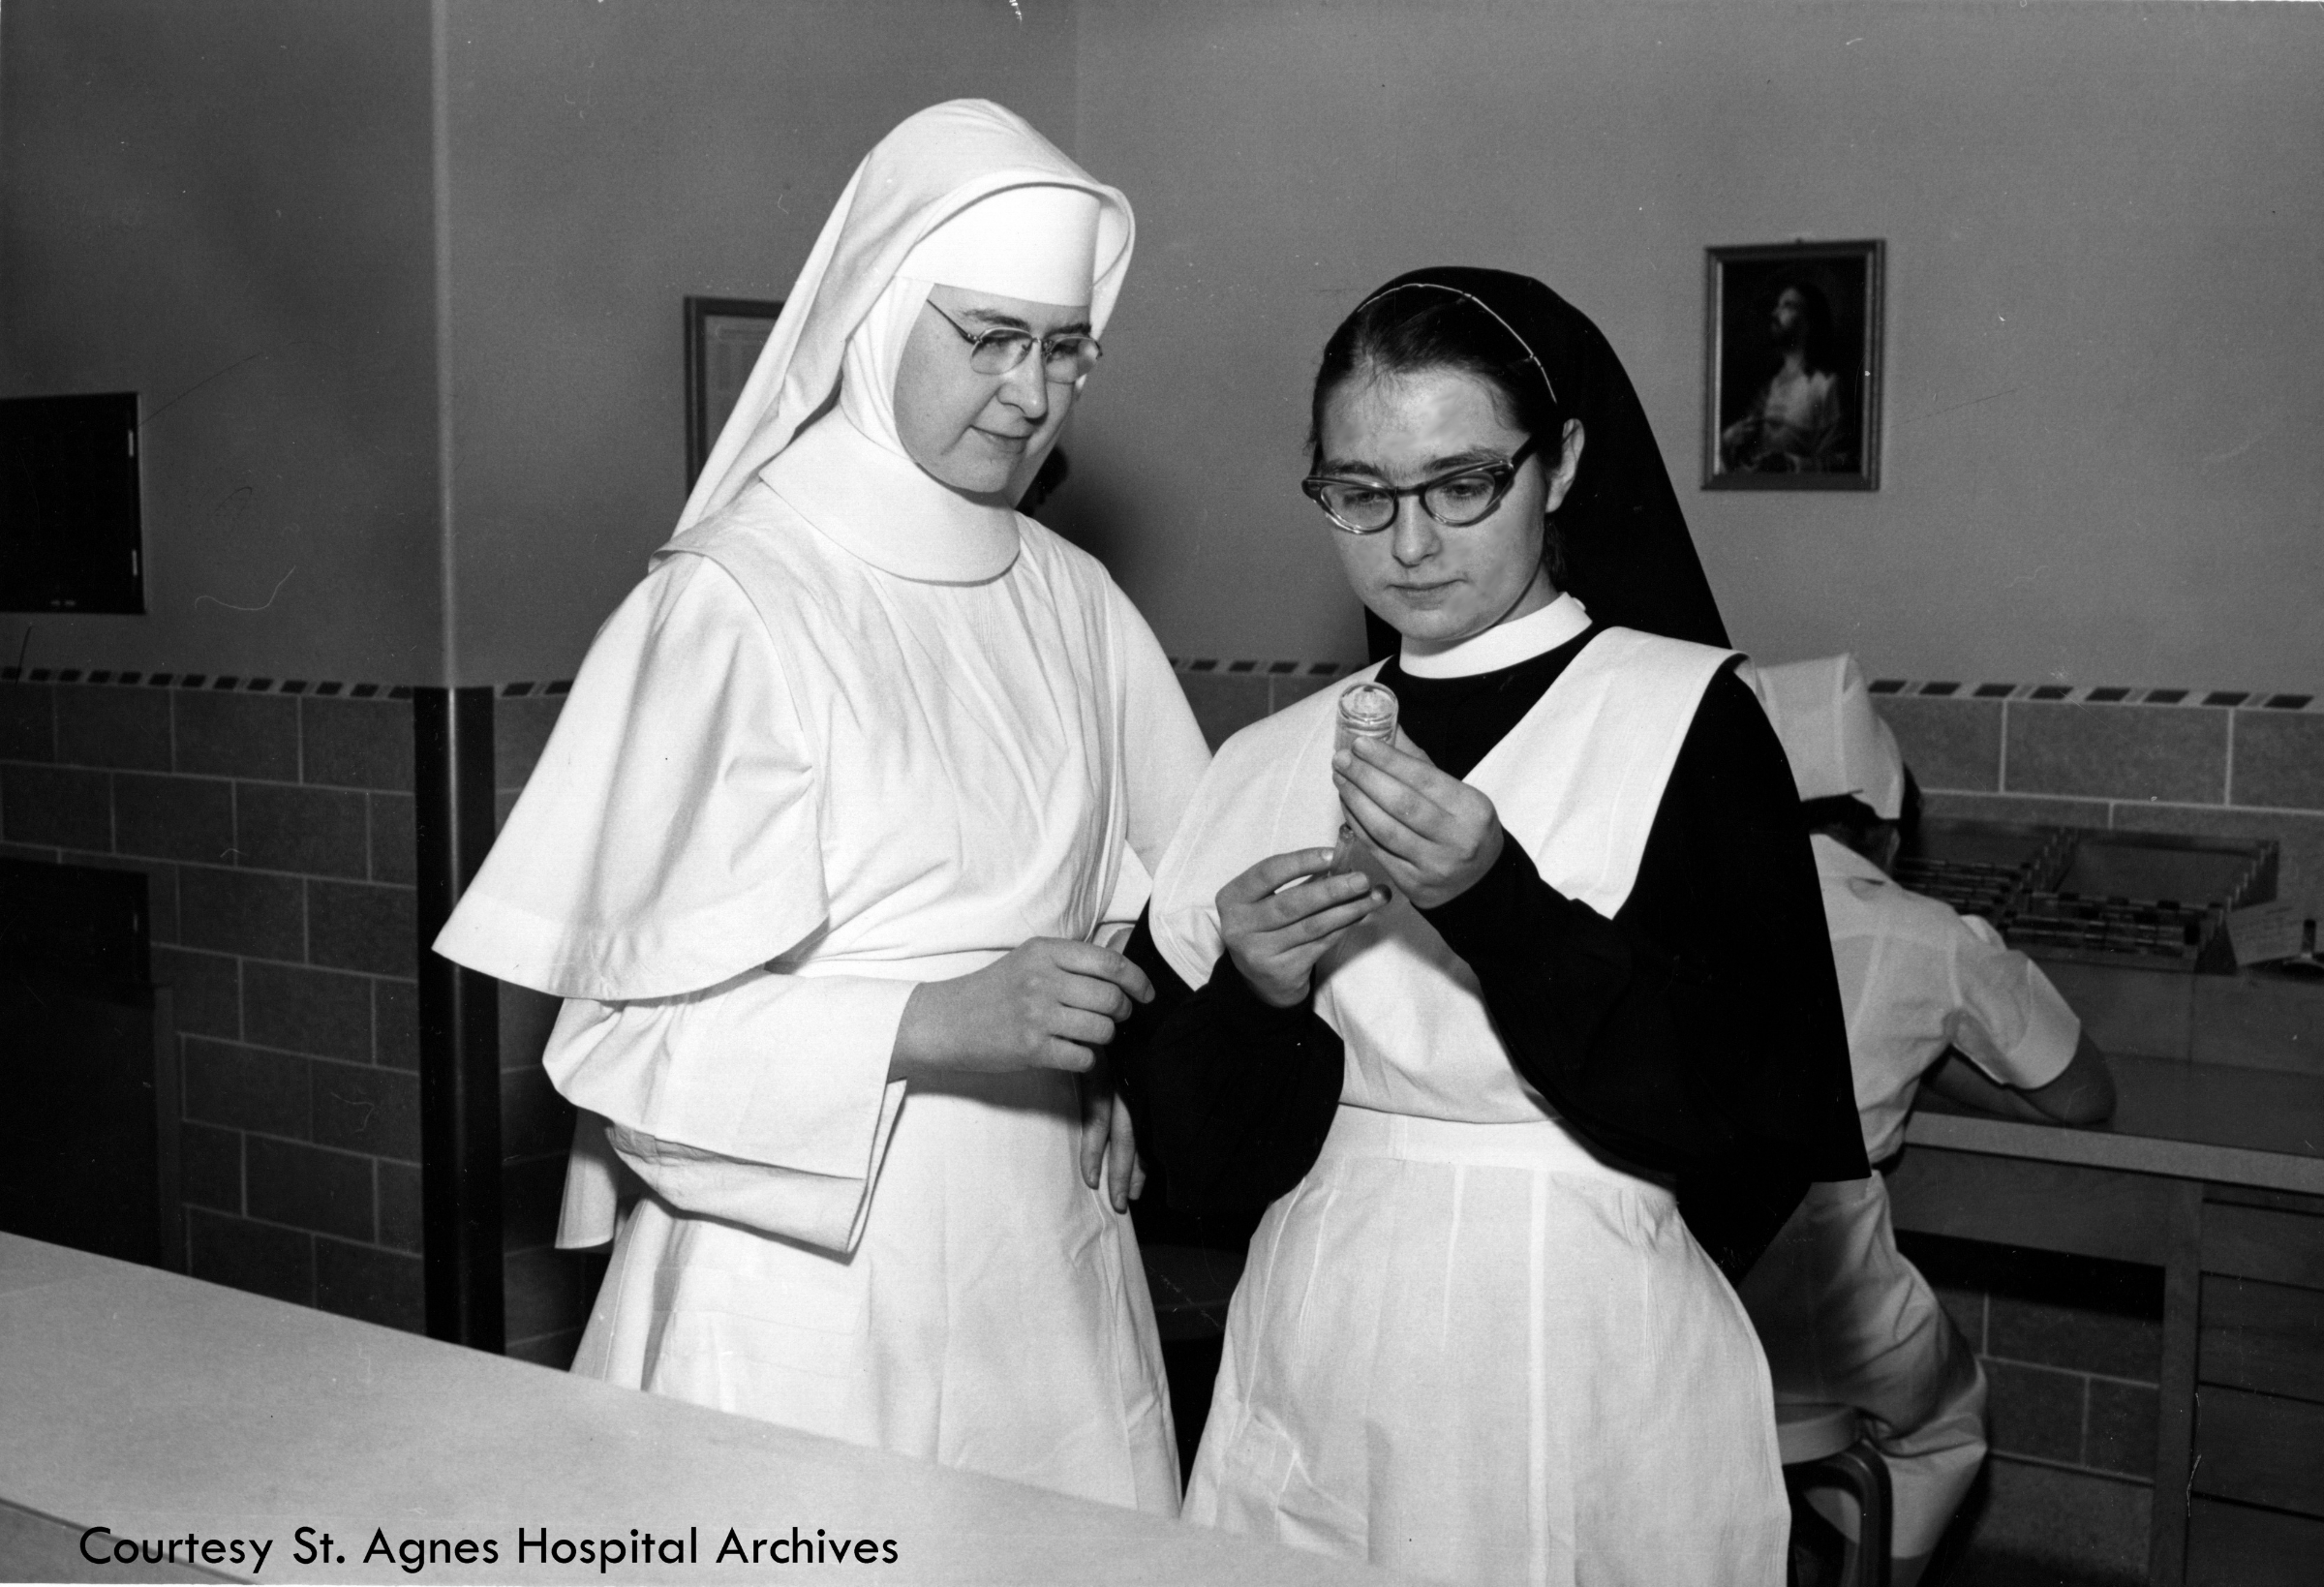 Sister Anne Jude Van Lanen with candidate and nursing student Mary Jean Mand, c. 1961.